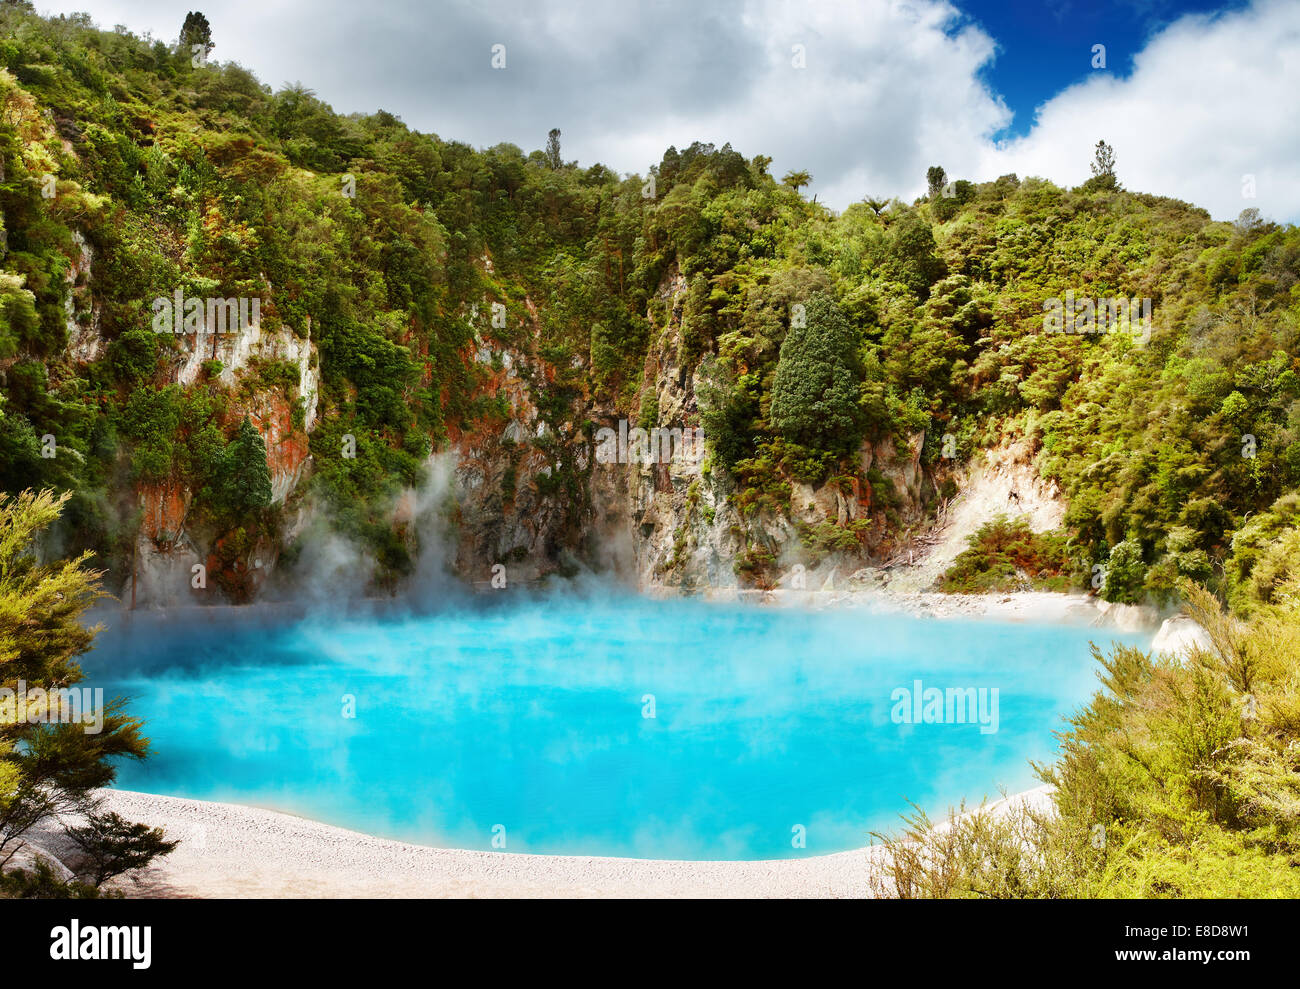 Inferno Crater Lake in Waimangu volcanic valley, New Zealand - Stock Image